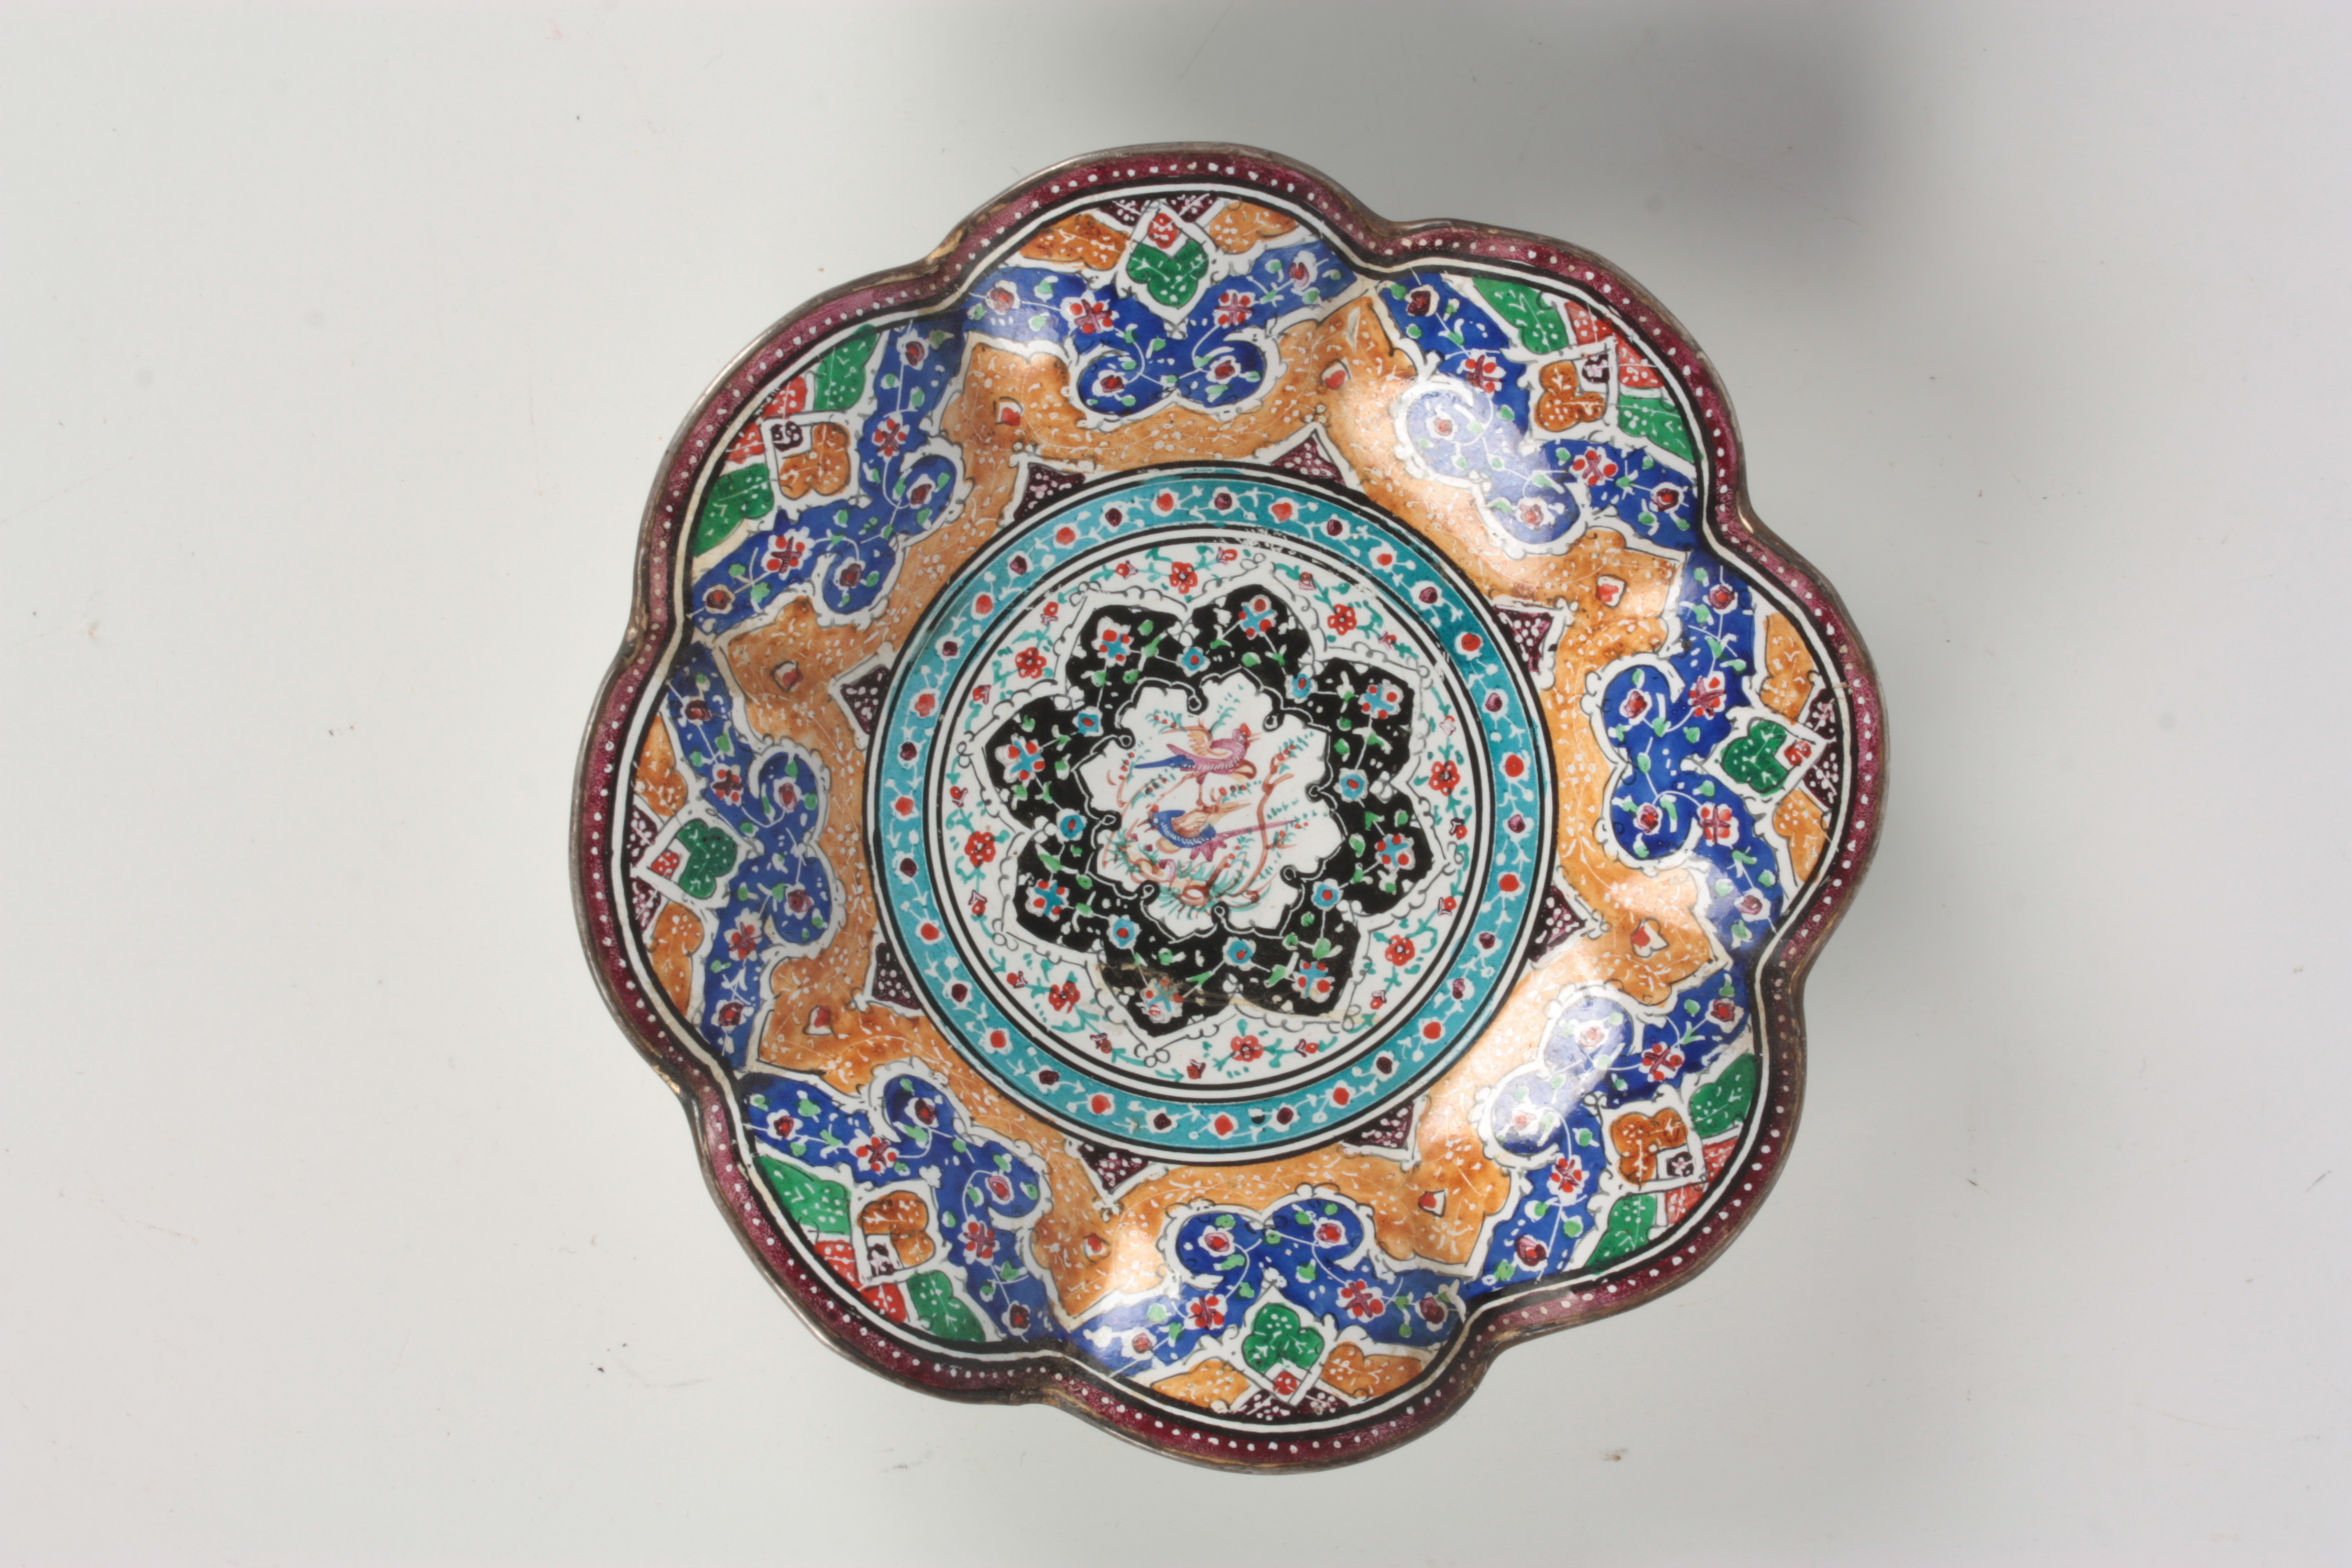 TWO 19TH CENTURY ISNIC ENAMELED DISHES having scalloped edges with birds, flowers, and geometric - Image 3 of 6